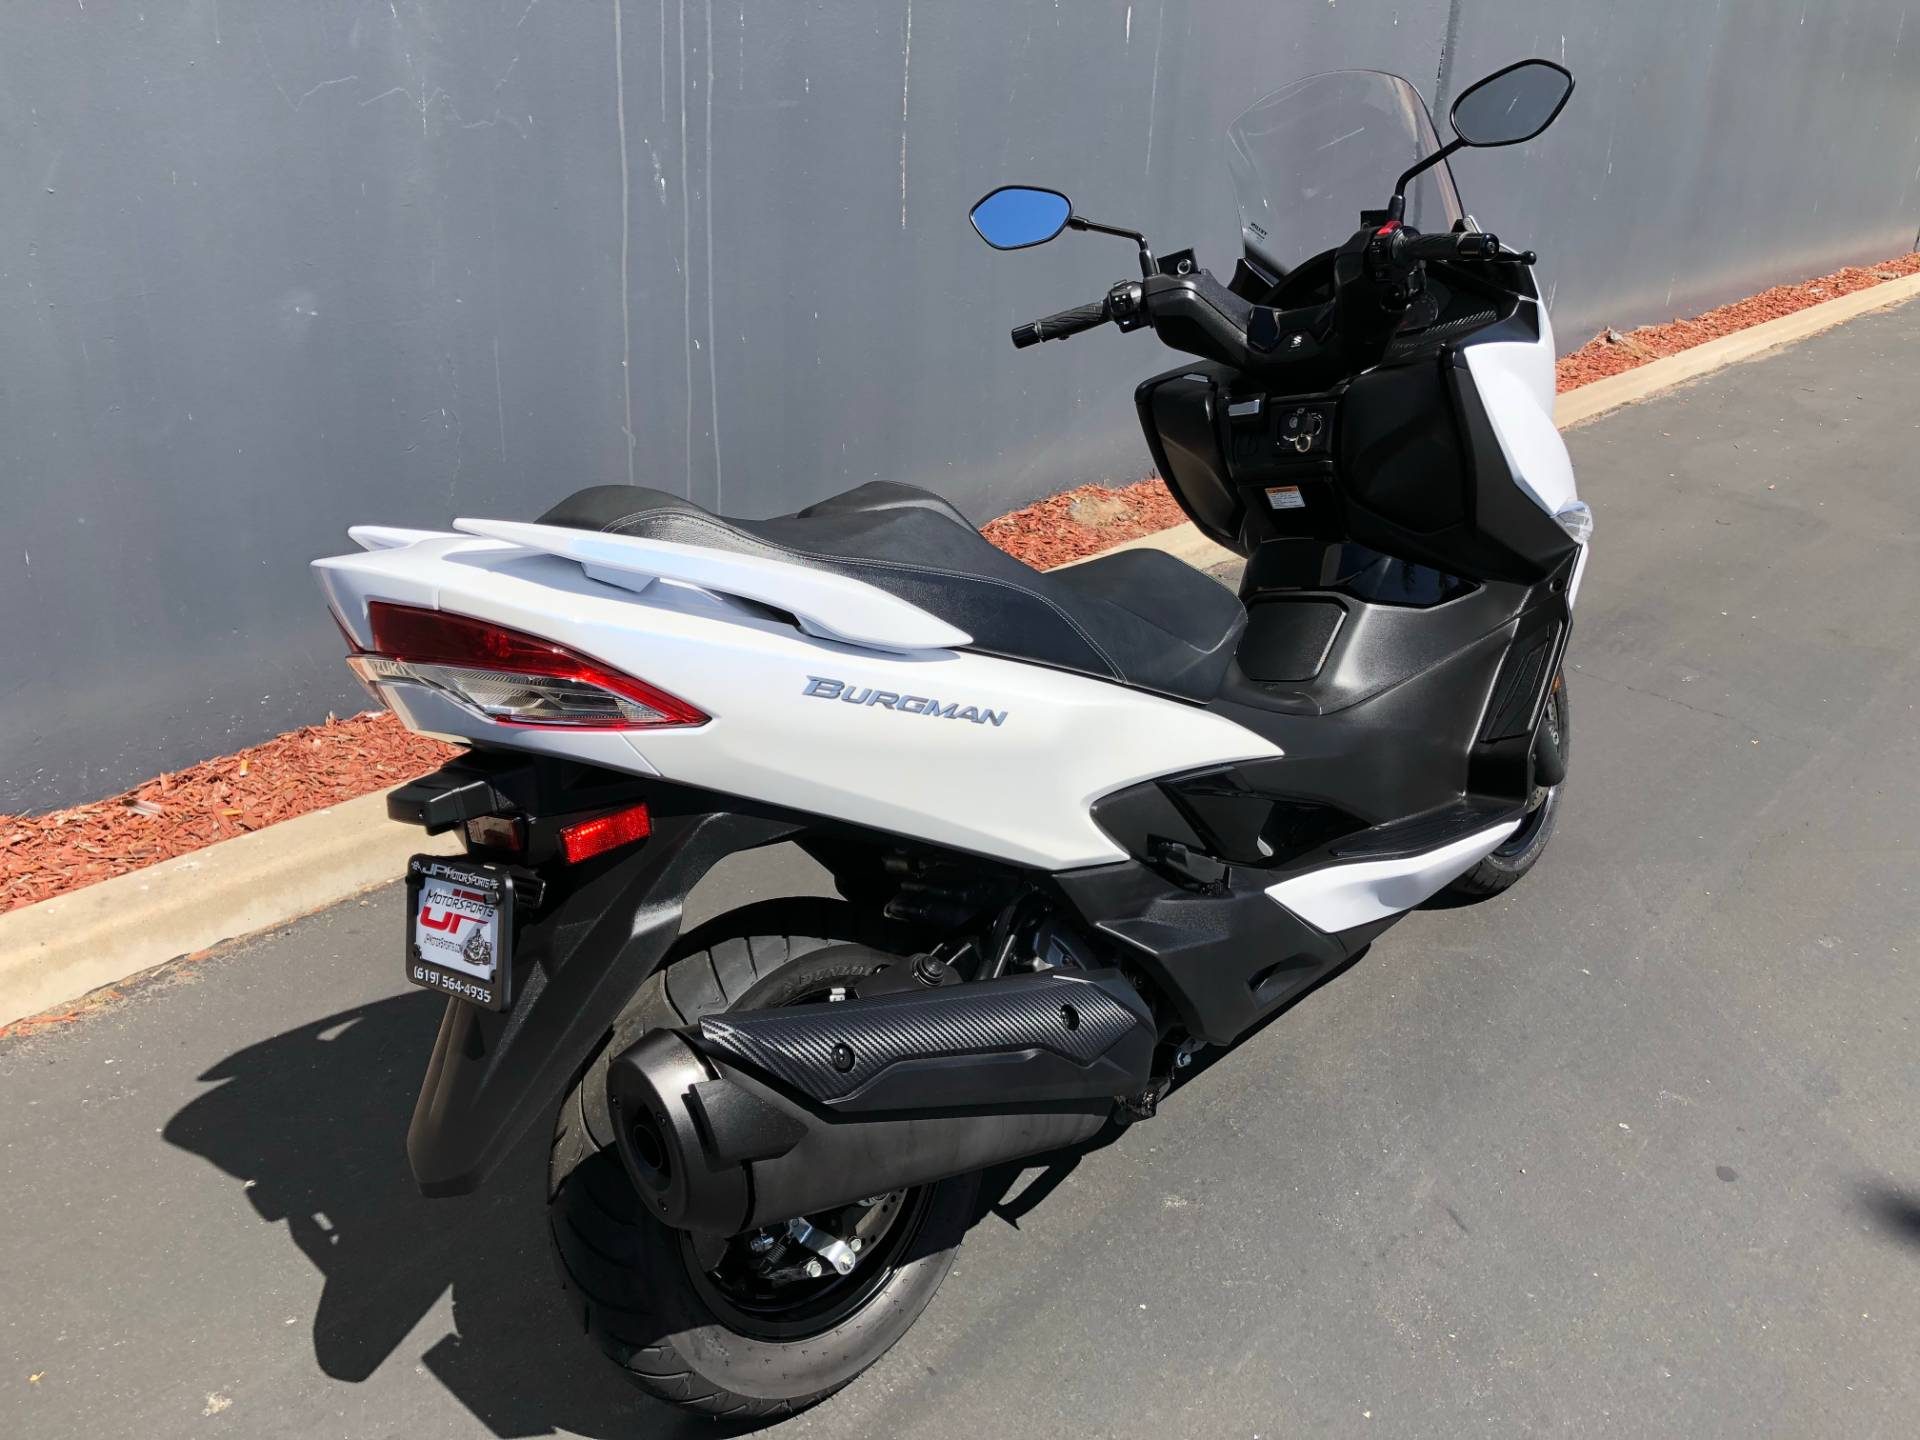 2018 Suzuki Burgman 400 ABS in Chula Vista, California